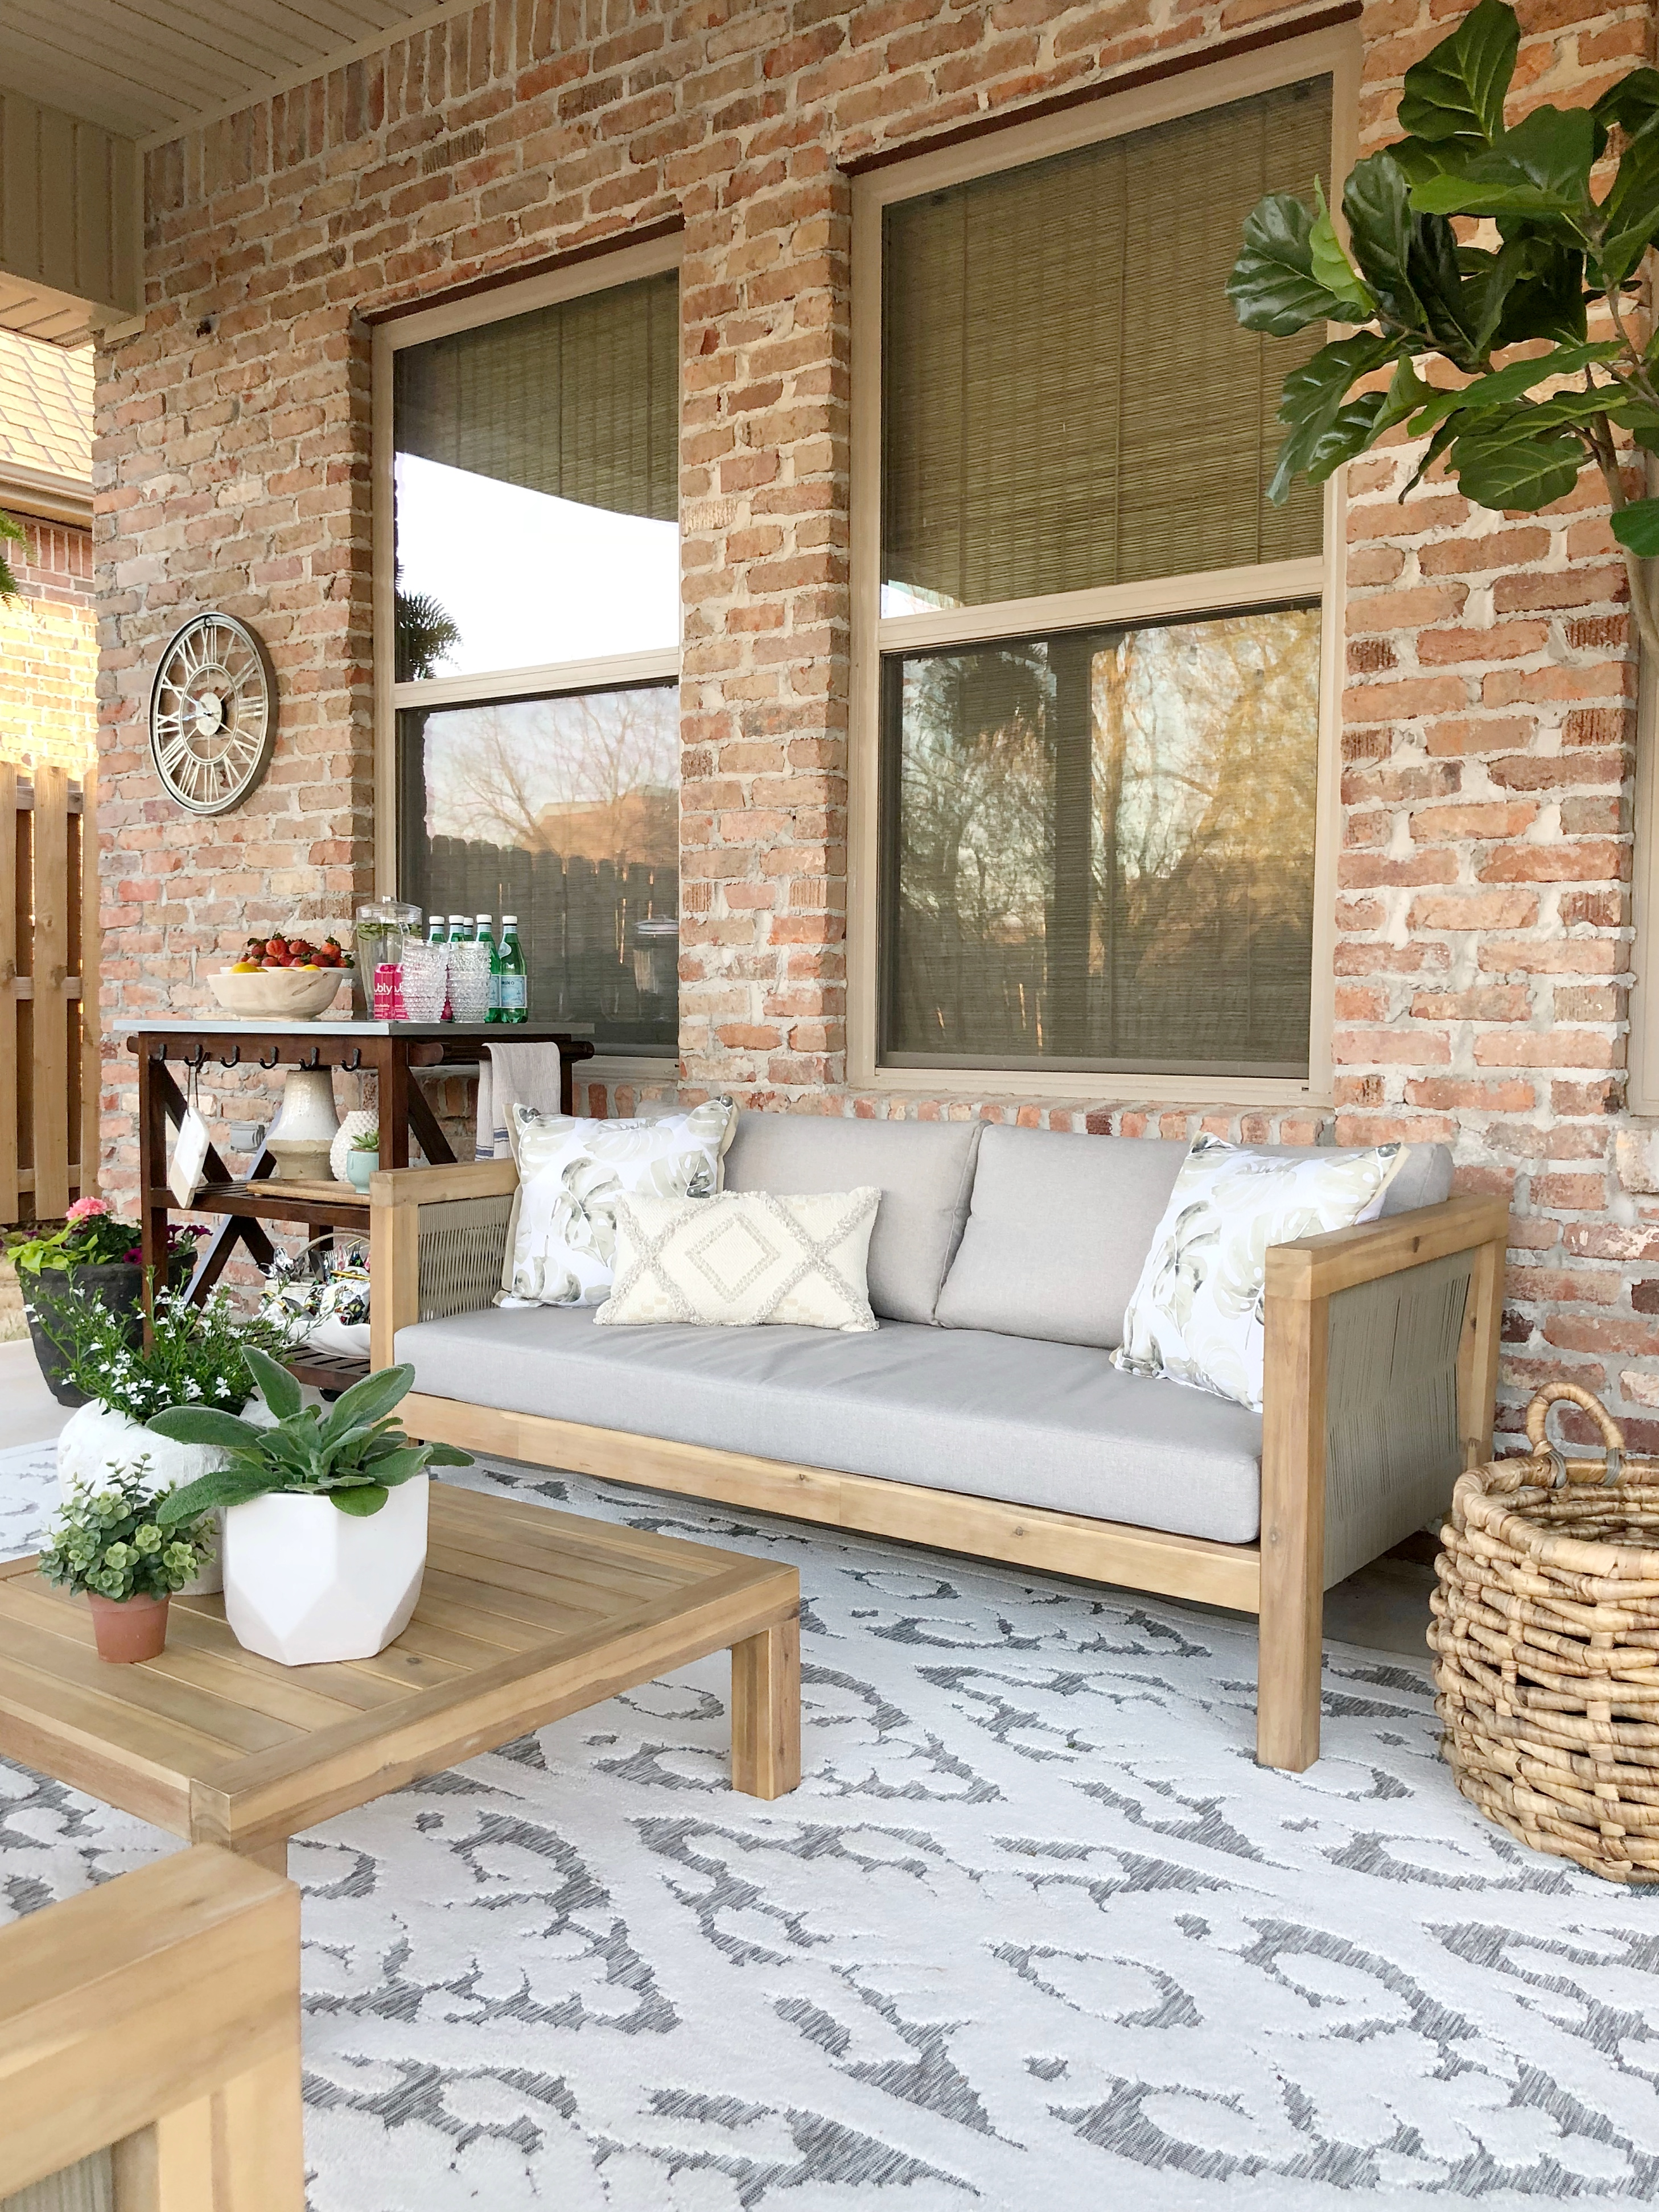 Creating An Outdoor Living Space With At Home Our Vintage Nest